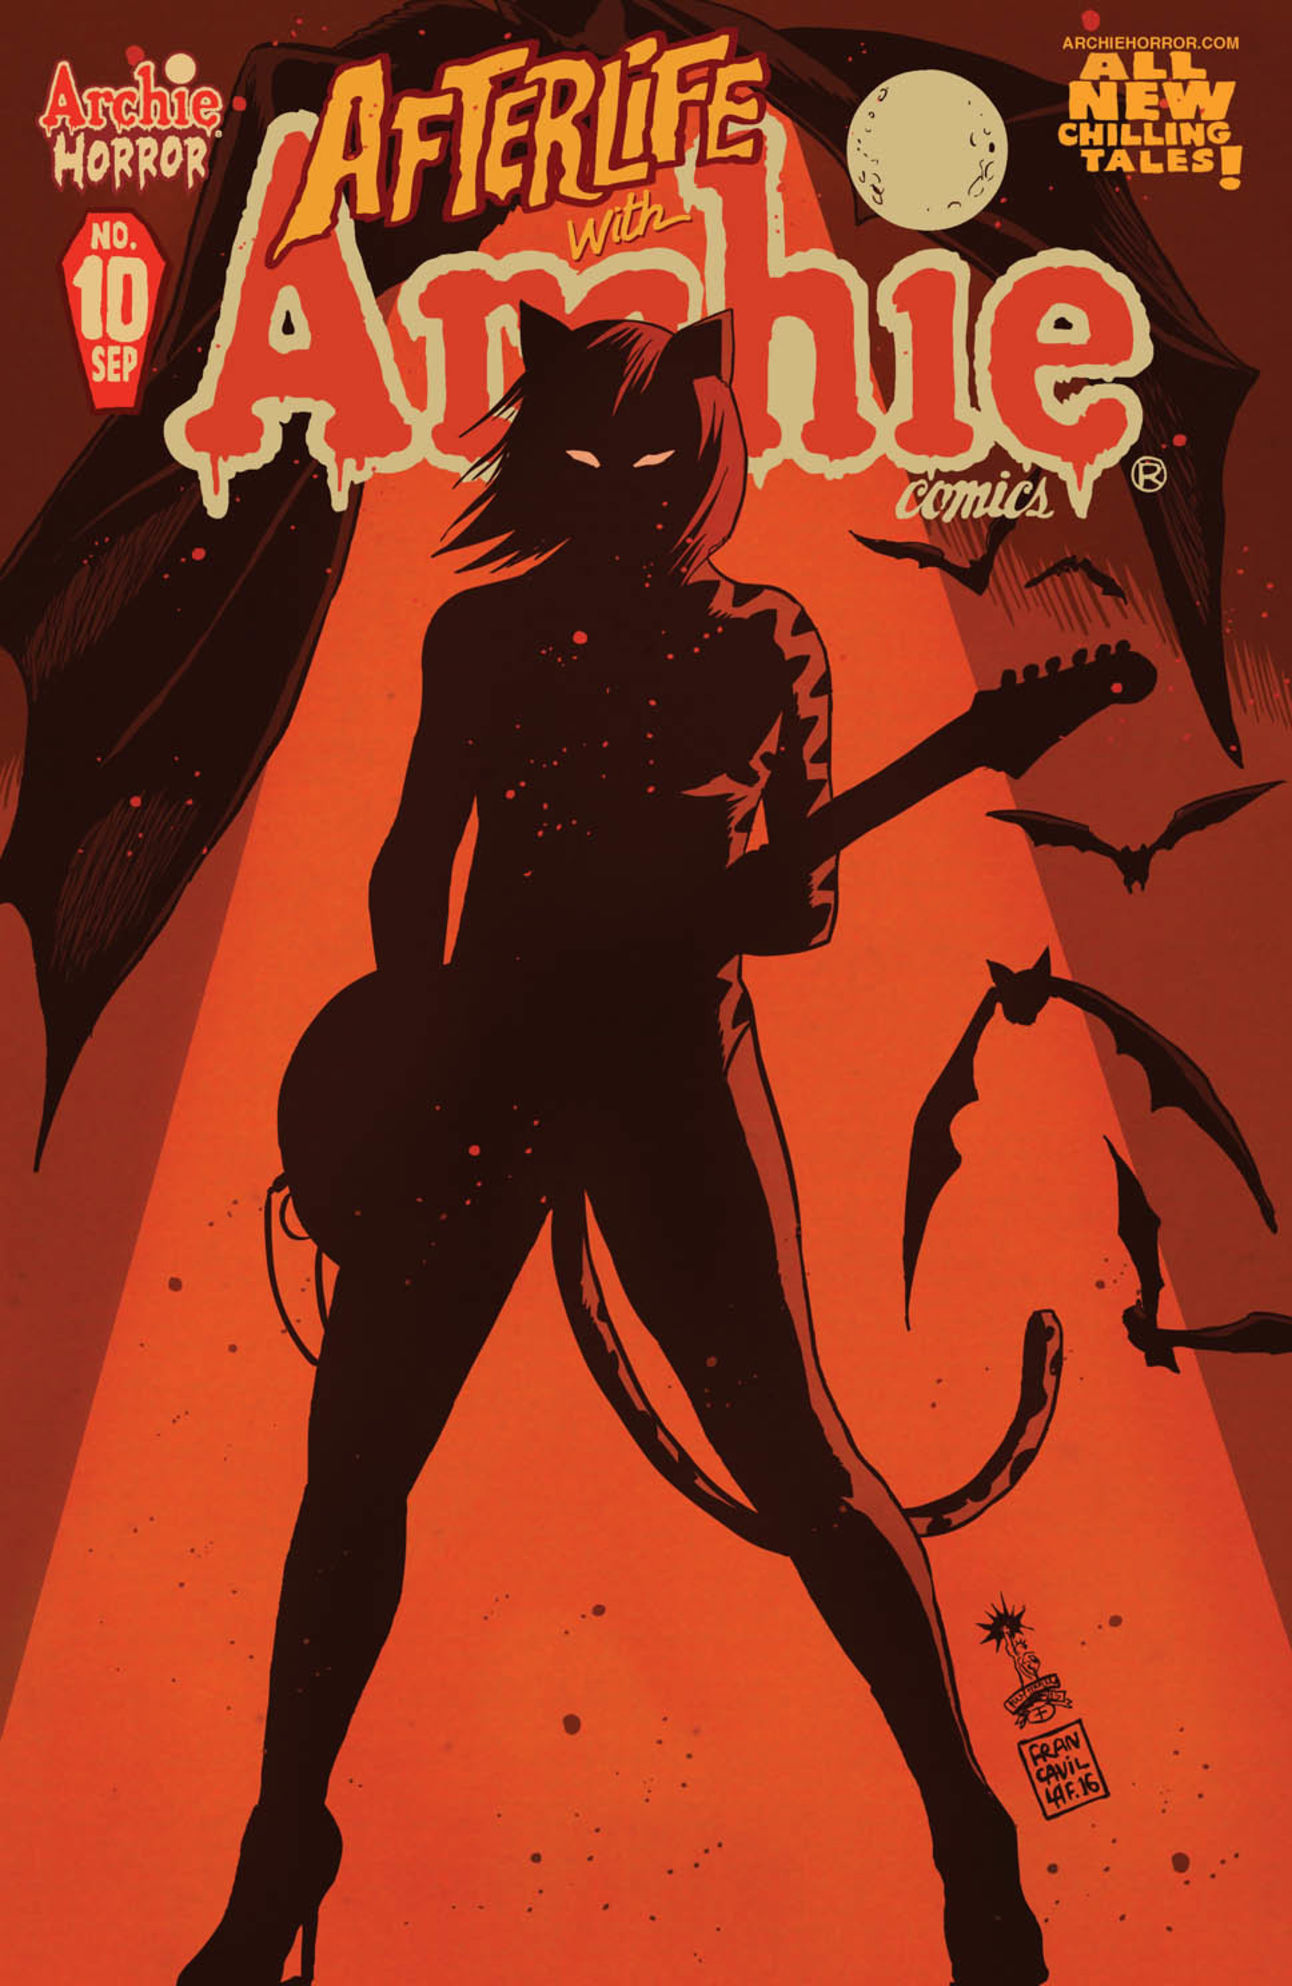 2016-afterlife_with_archie_10.jpg